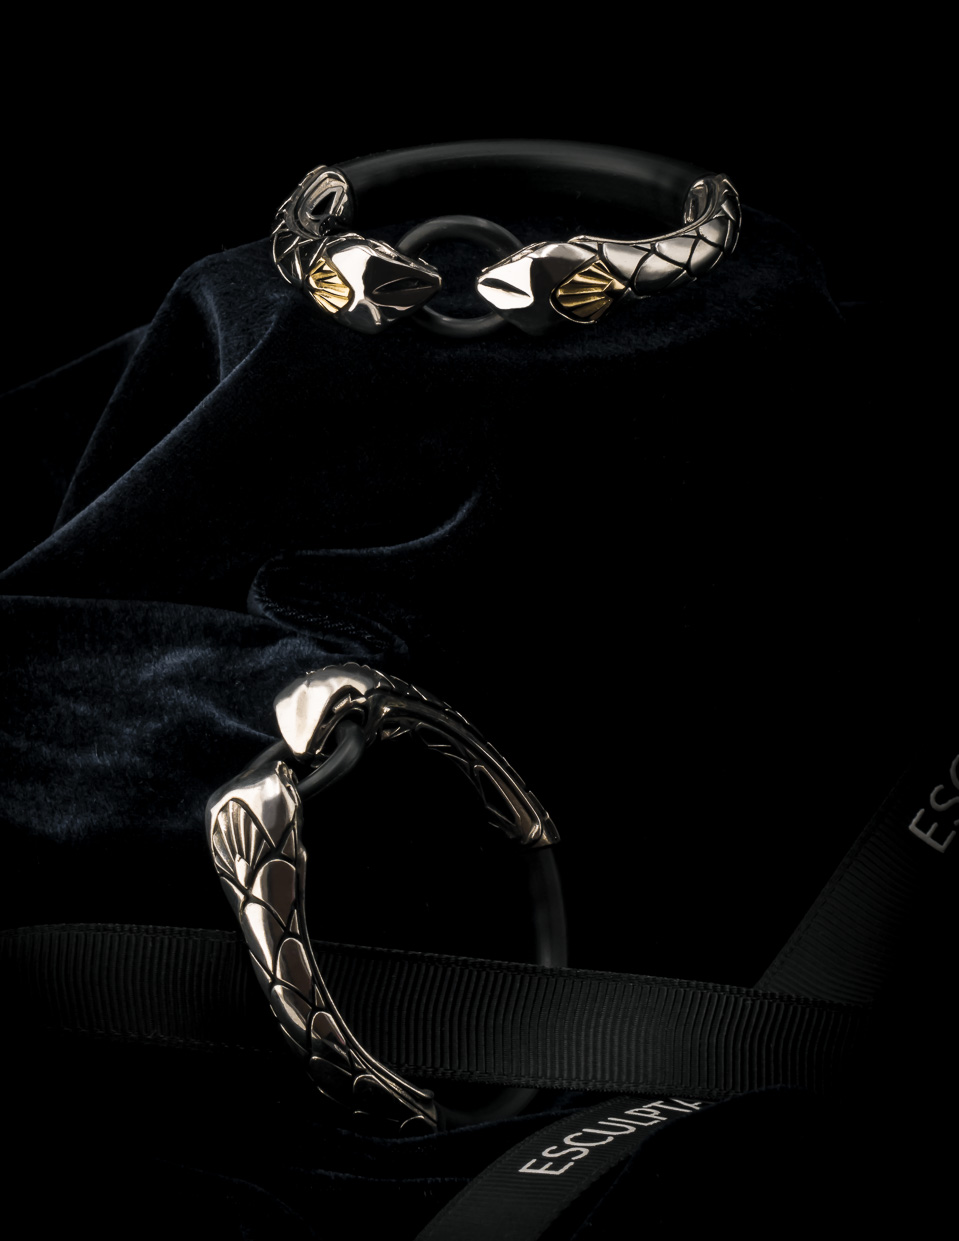 BOA glorious serpent bracelet from silver made by esculpta